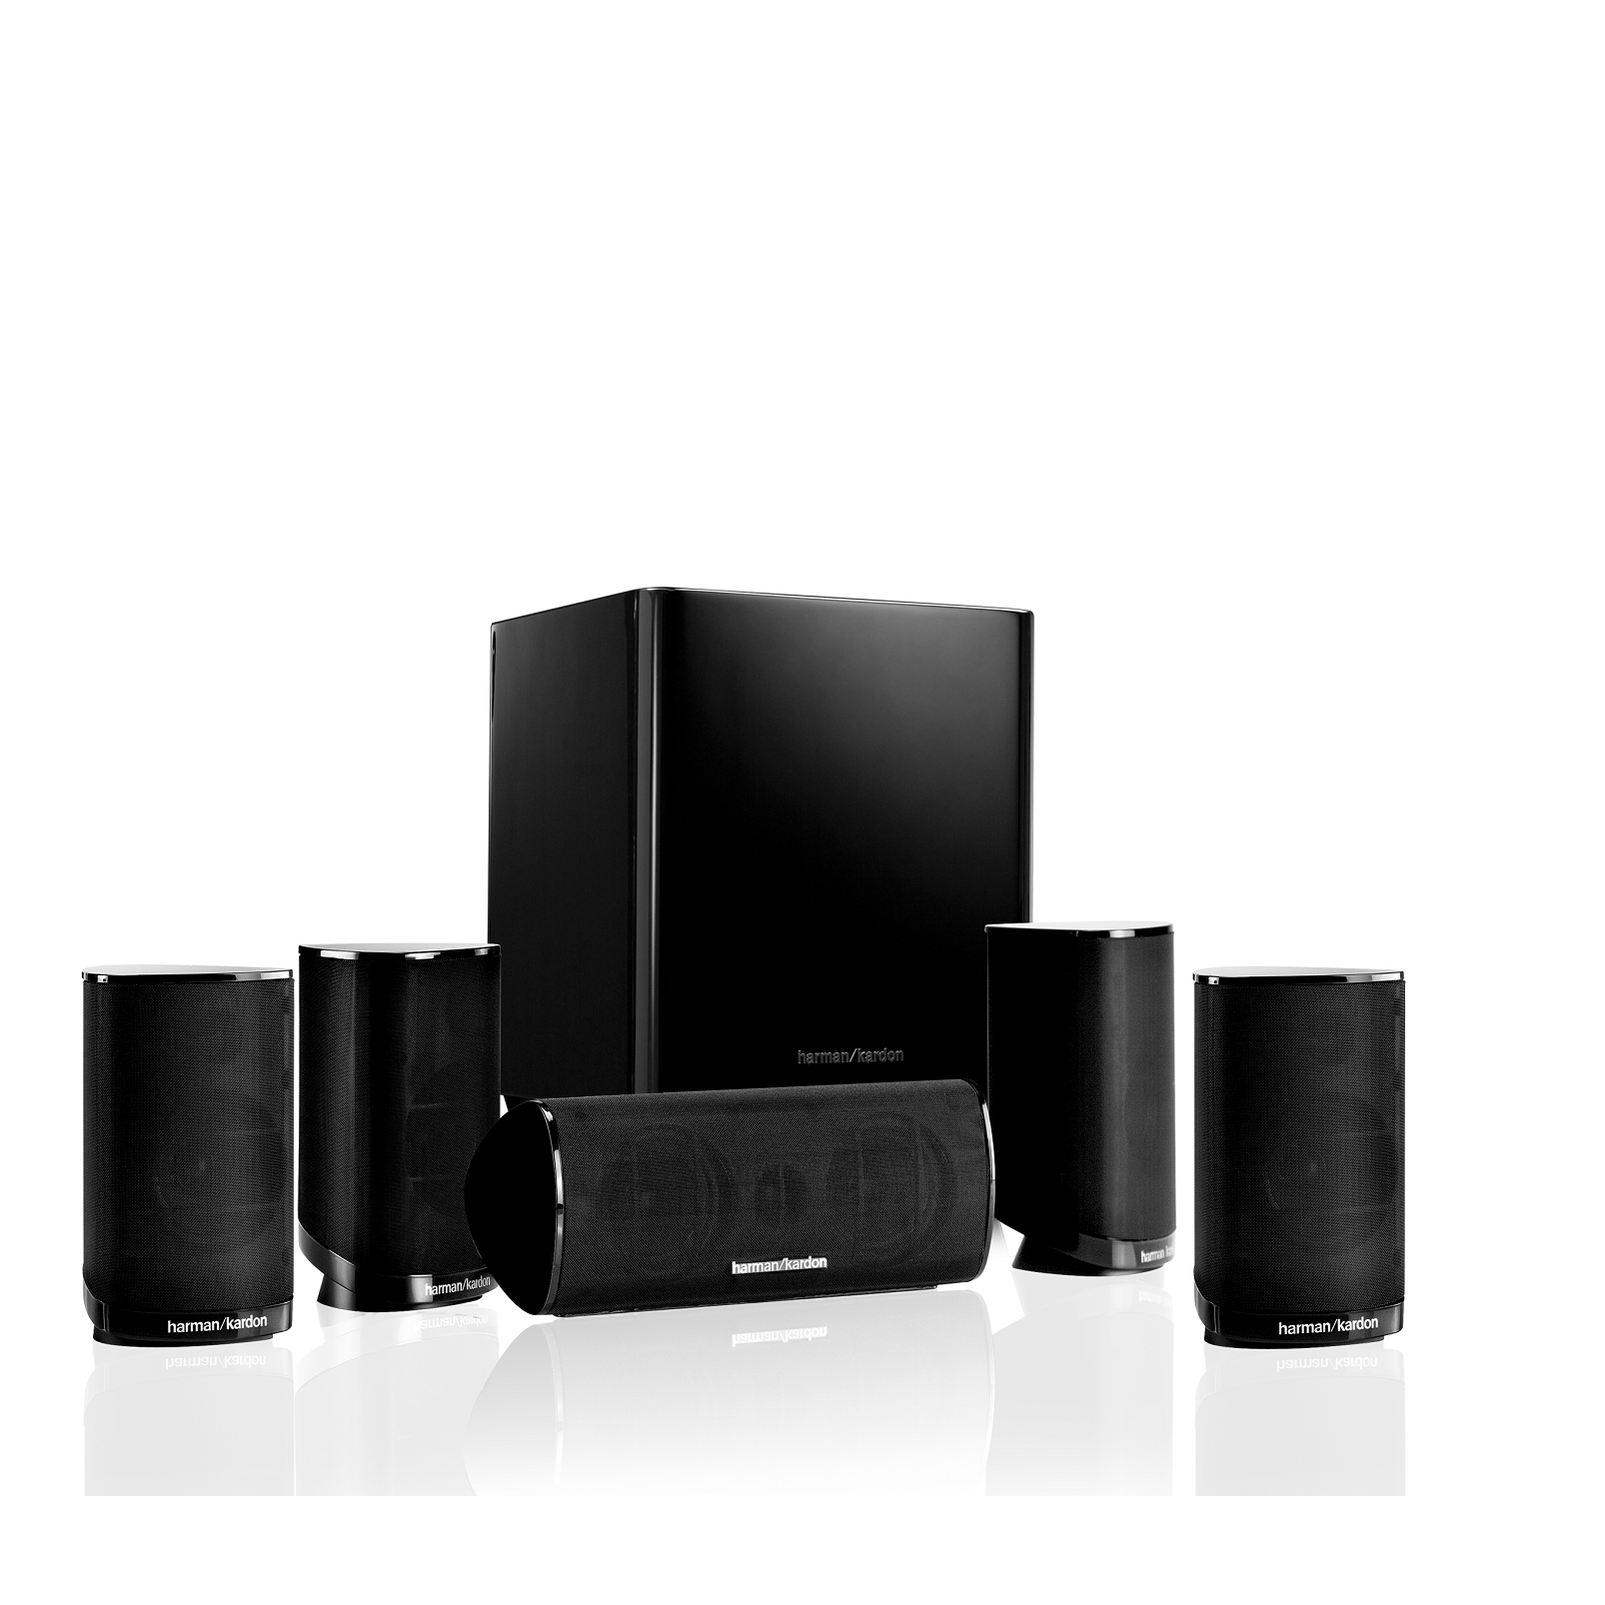 Hkts 9 5 1 Channel Home Theatre Speaker System